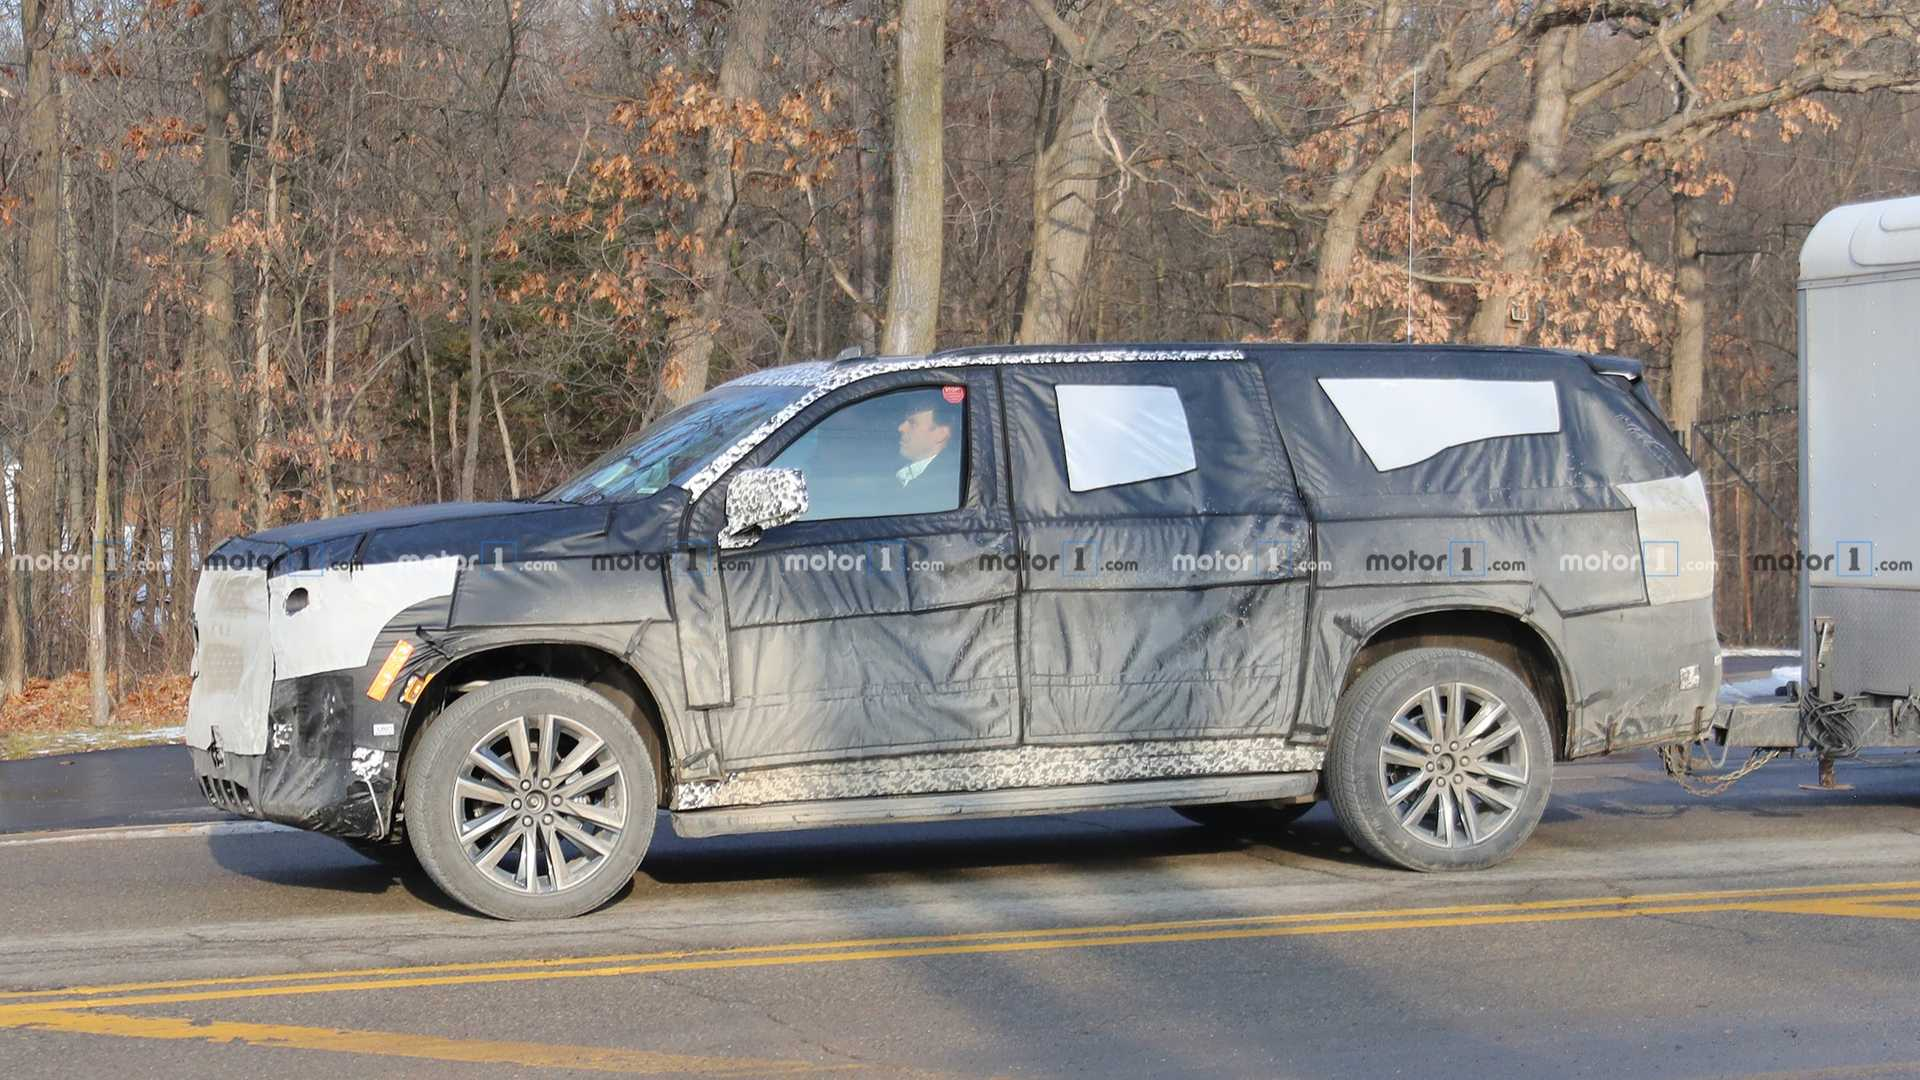 36 All New 2020 Cadillac Escalade Body Style Change Performance and New Engine for 2020 Cadillac Escalade Body Style Change